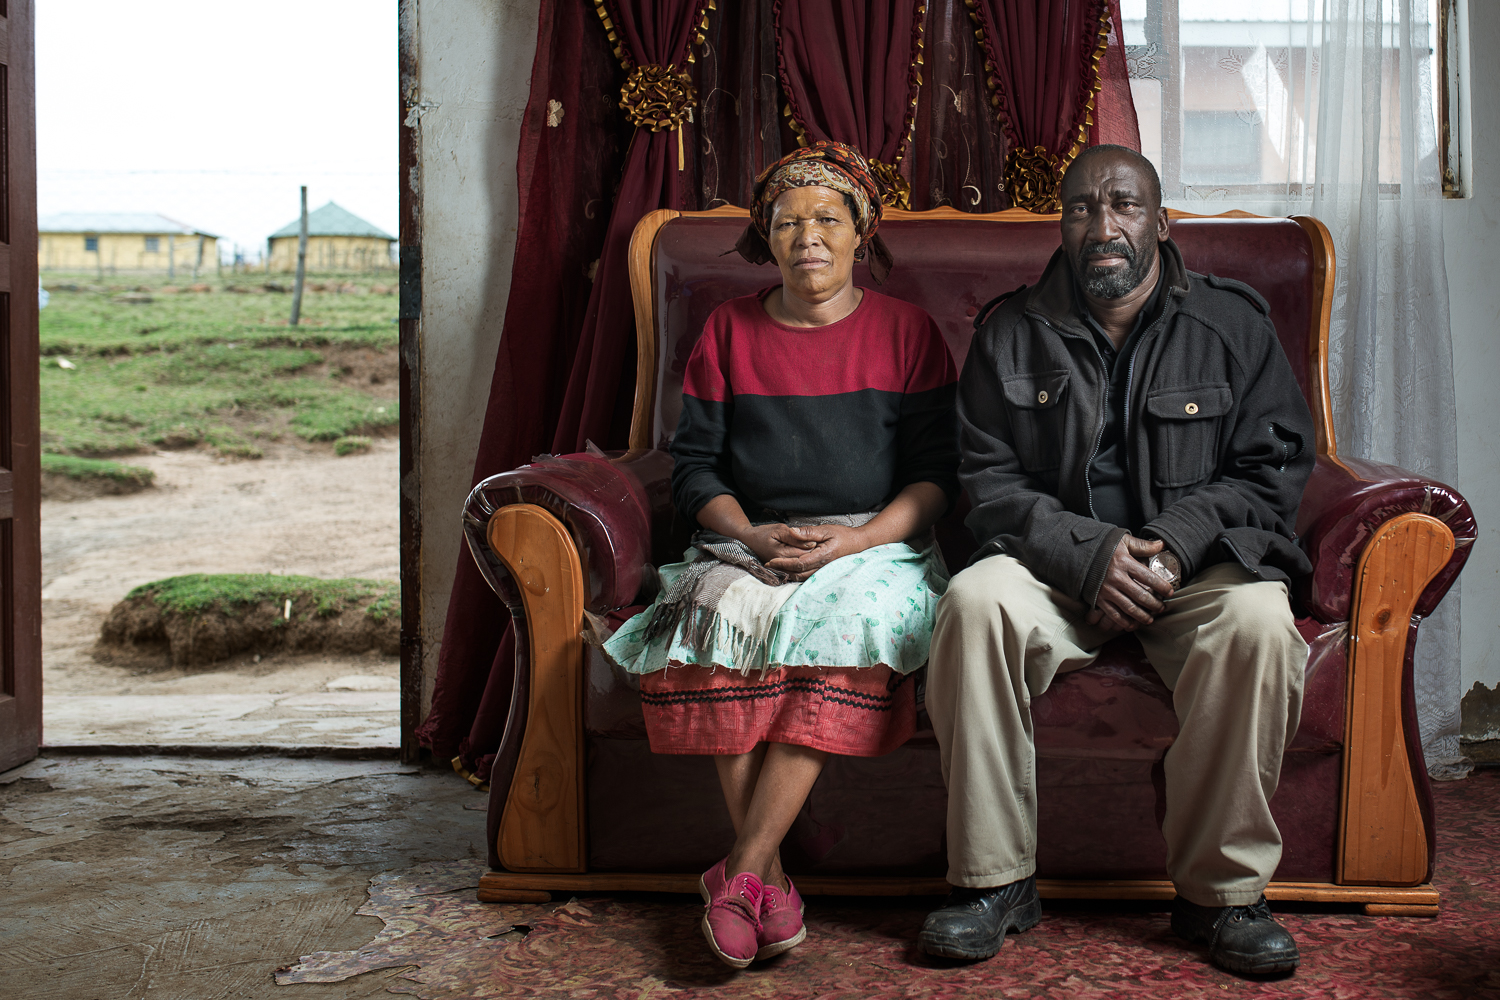 Zolisa Jejana , 56, was diagnosed with Pulmonary tuberculosis after he had left his job on the gold mines. He was retrenched in 1989 due to his participation in a three-day strike where 59 miners stayed underground for three days. At the time they were earning R1000 a month (approx. £50) and were demanding a wage increase. All 59 miners were retrenched. Mr Jejana received no compensation for his illness and now tries to pick up casual work as a bricklayer. With the small amount of work he can get he needs to support his wife and 6 children.